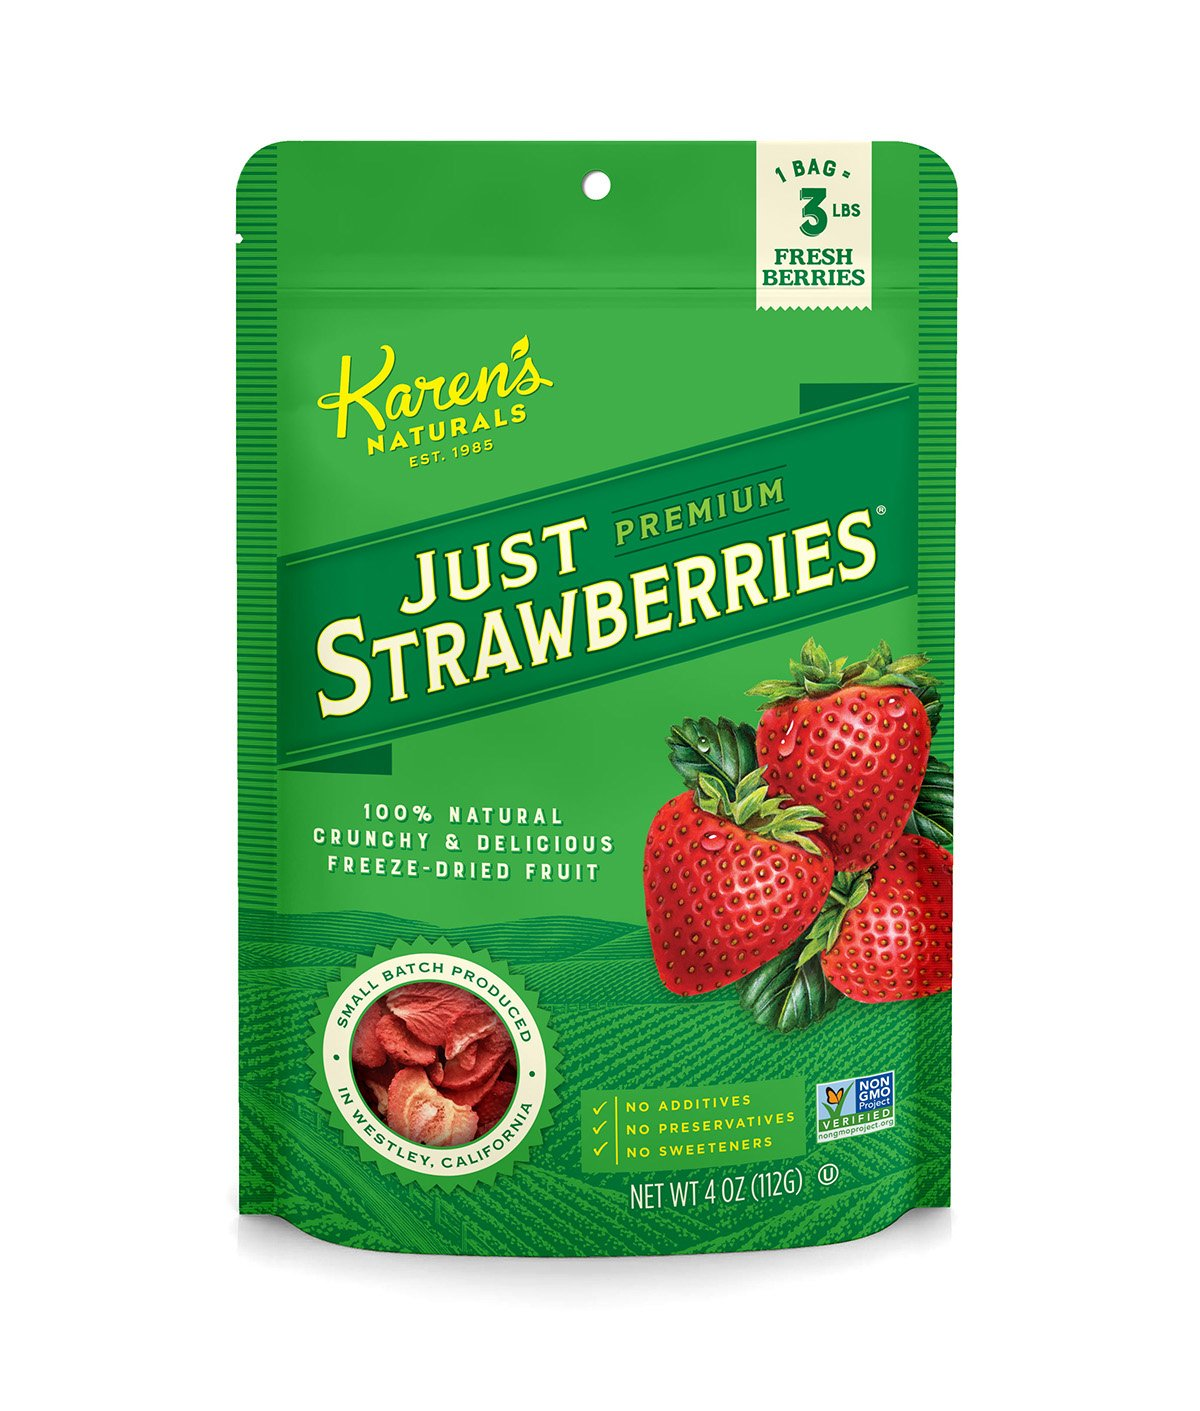 Karen's Naturals Just Strawberries, 4 Ounce Pouch, Freeze-Dried Strawberries, Non-GMO, No Additives, No Preservatives, No Sweeteners